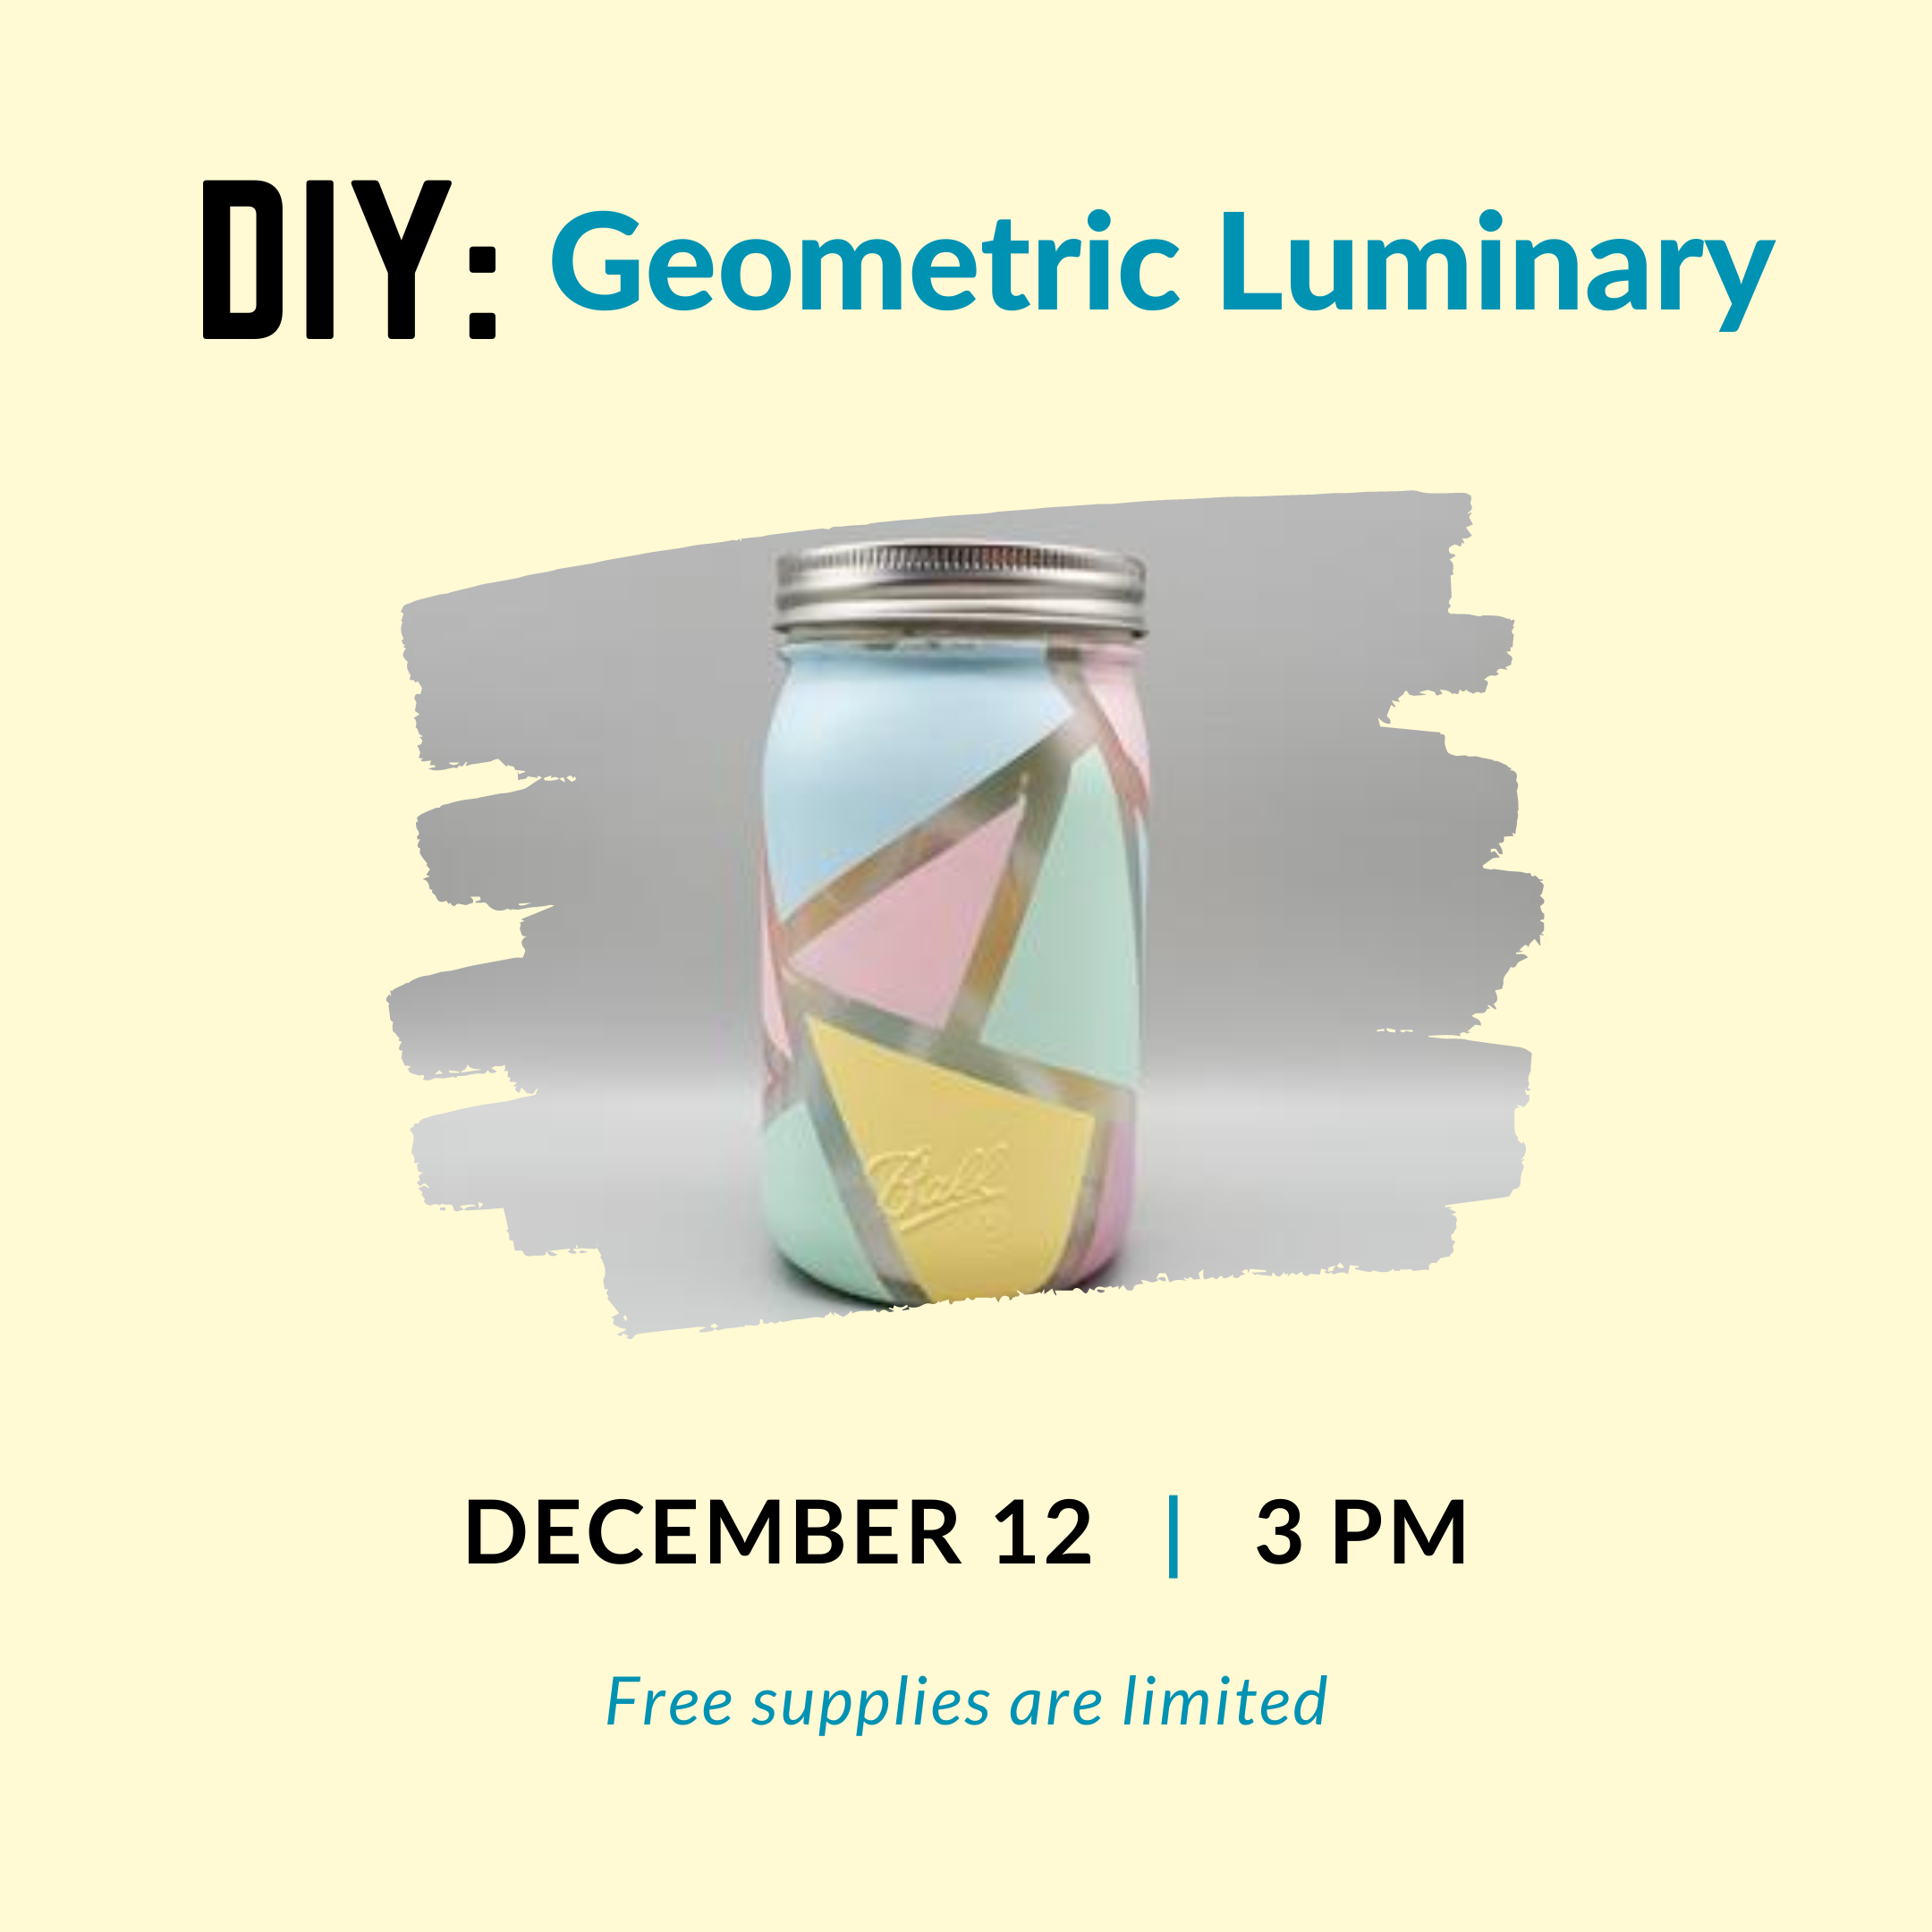 DIY: Geometric Luminary